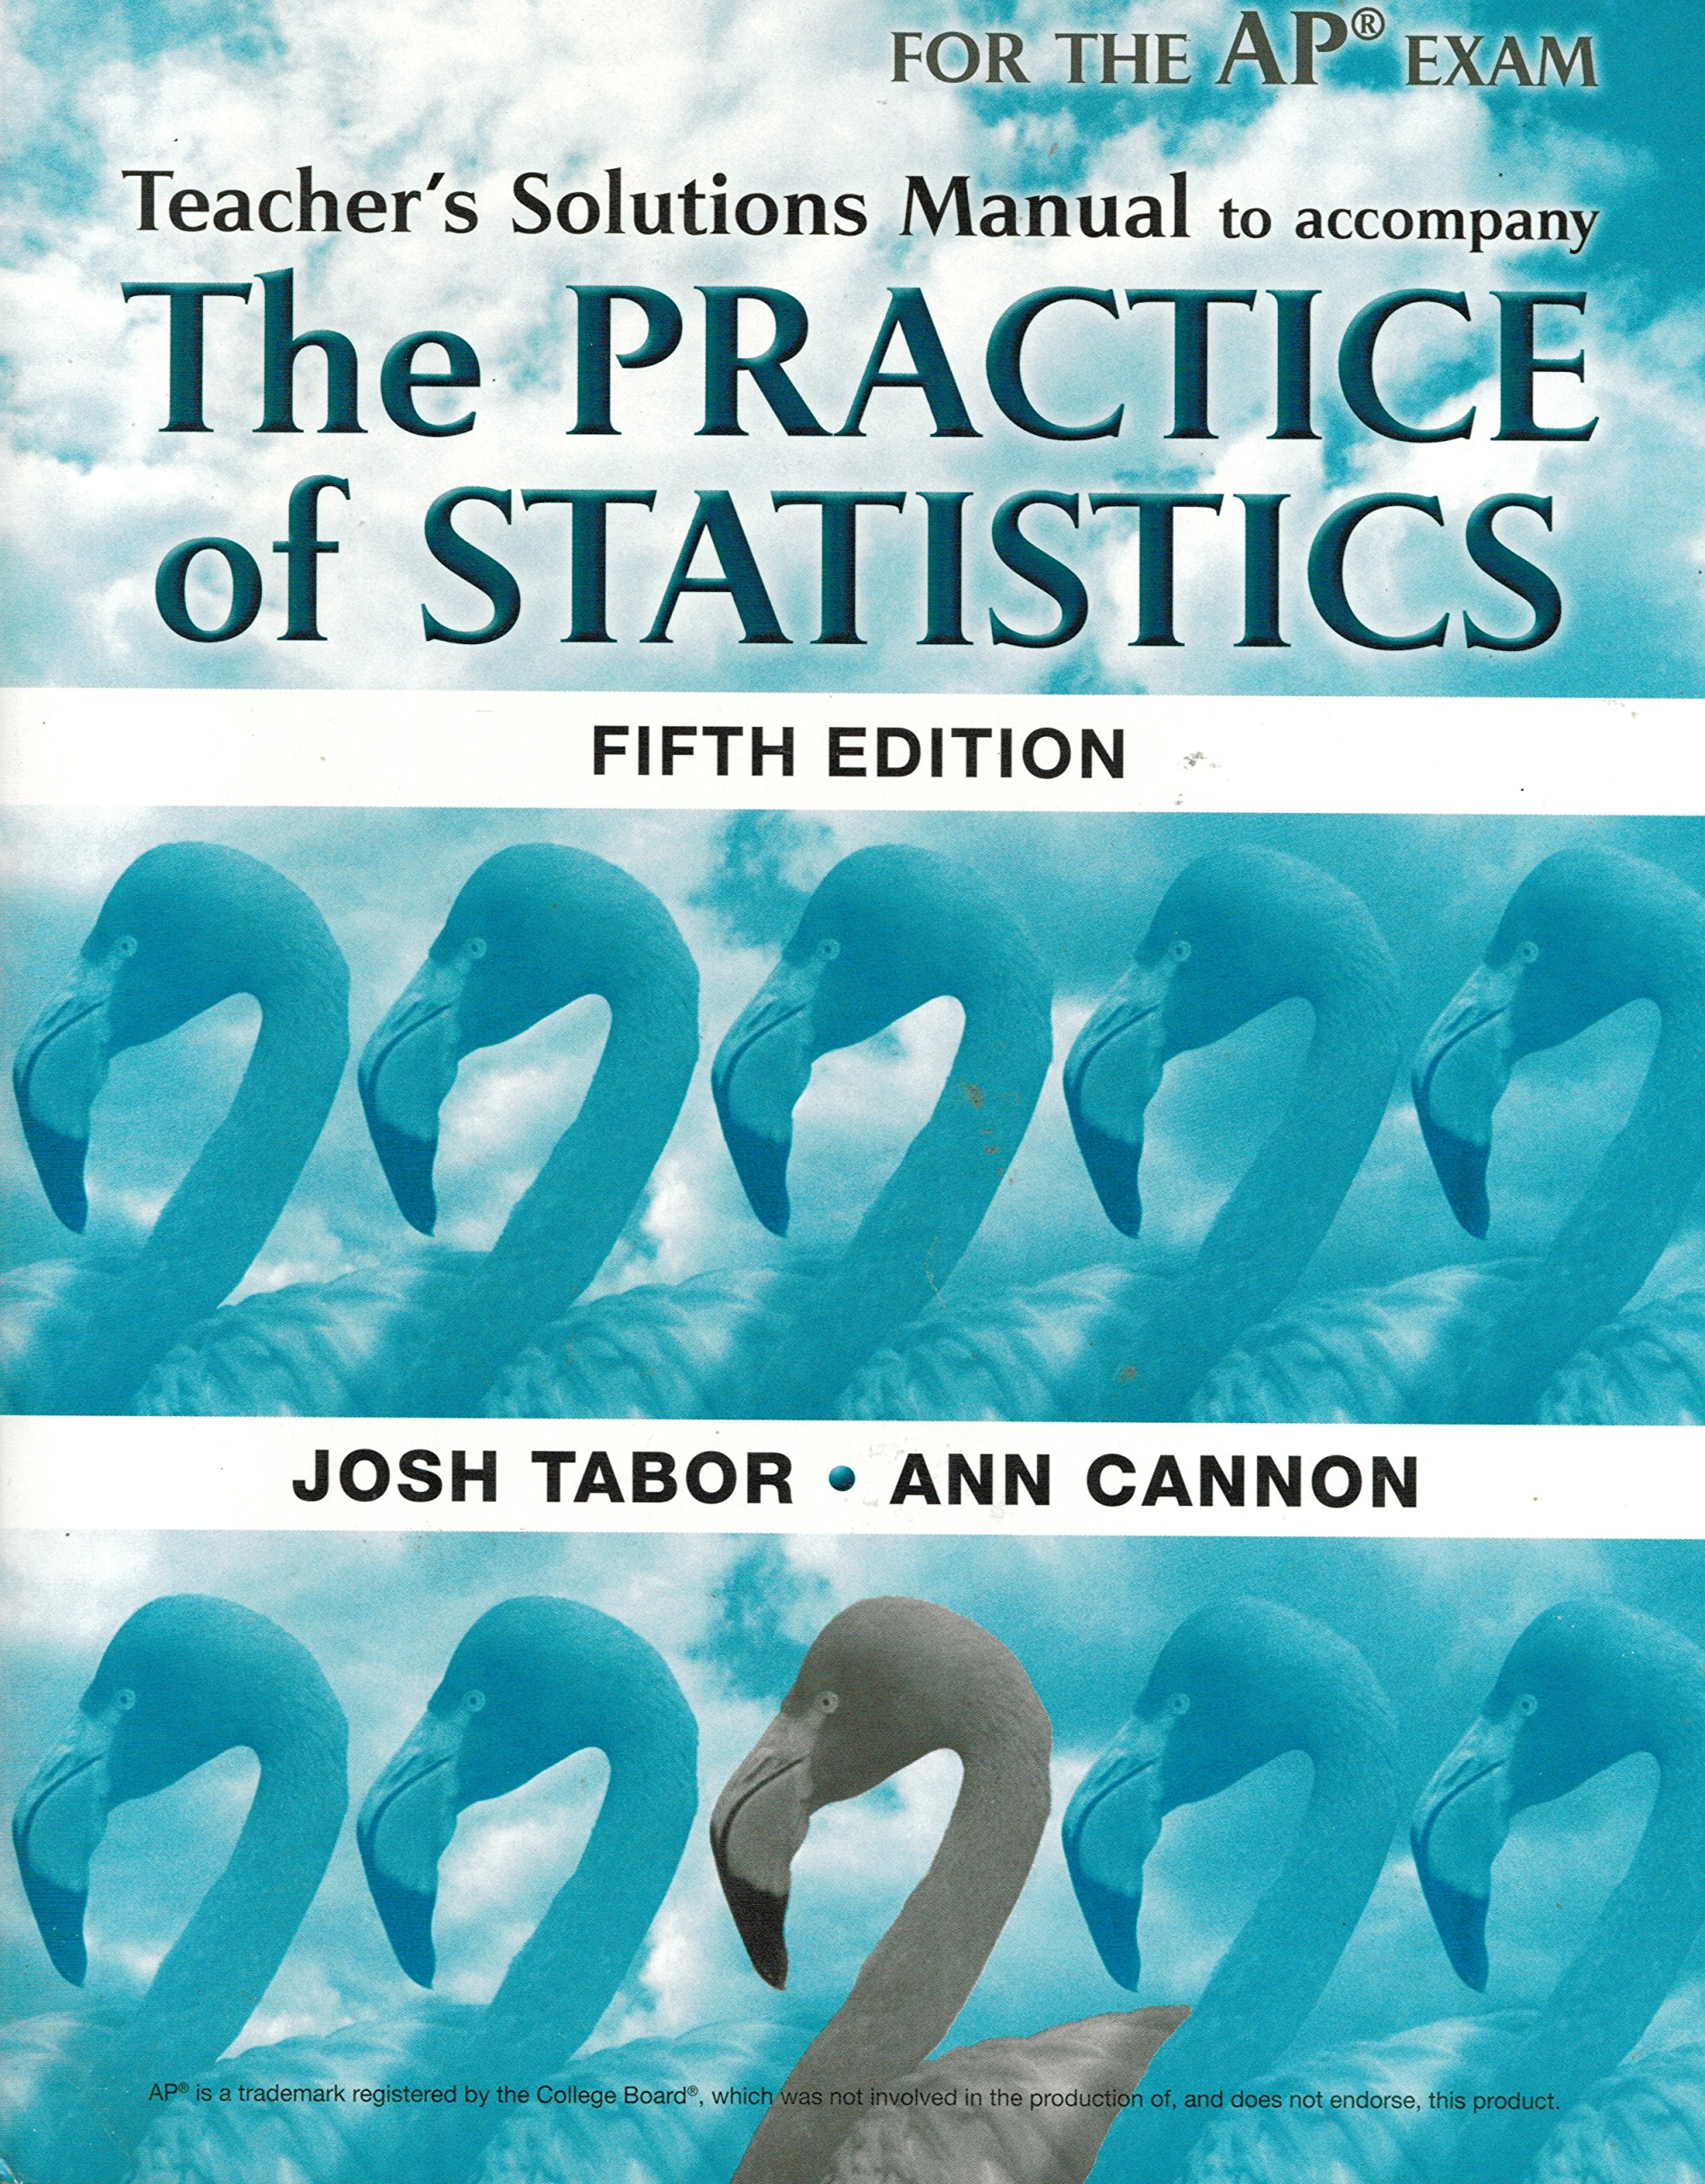 The Practice Of Statistics 5th Edition Pdf Free Starnes